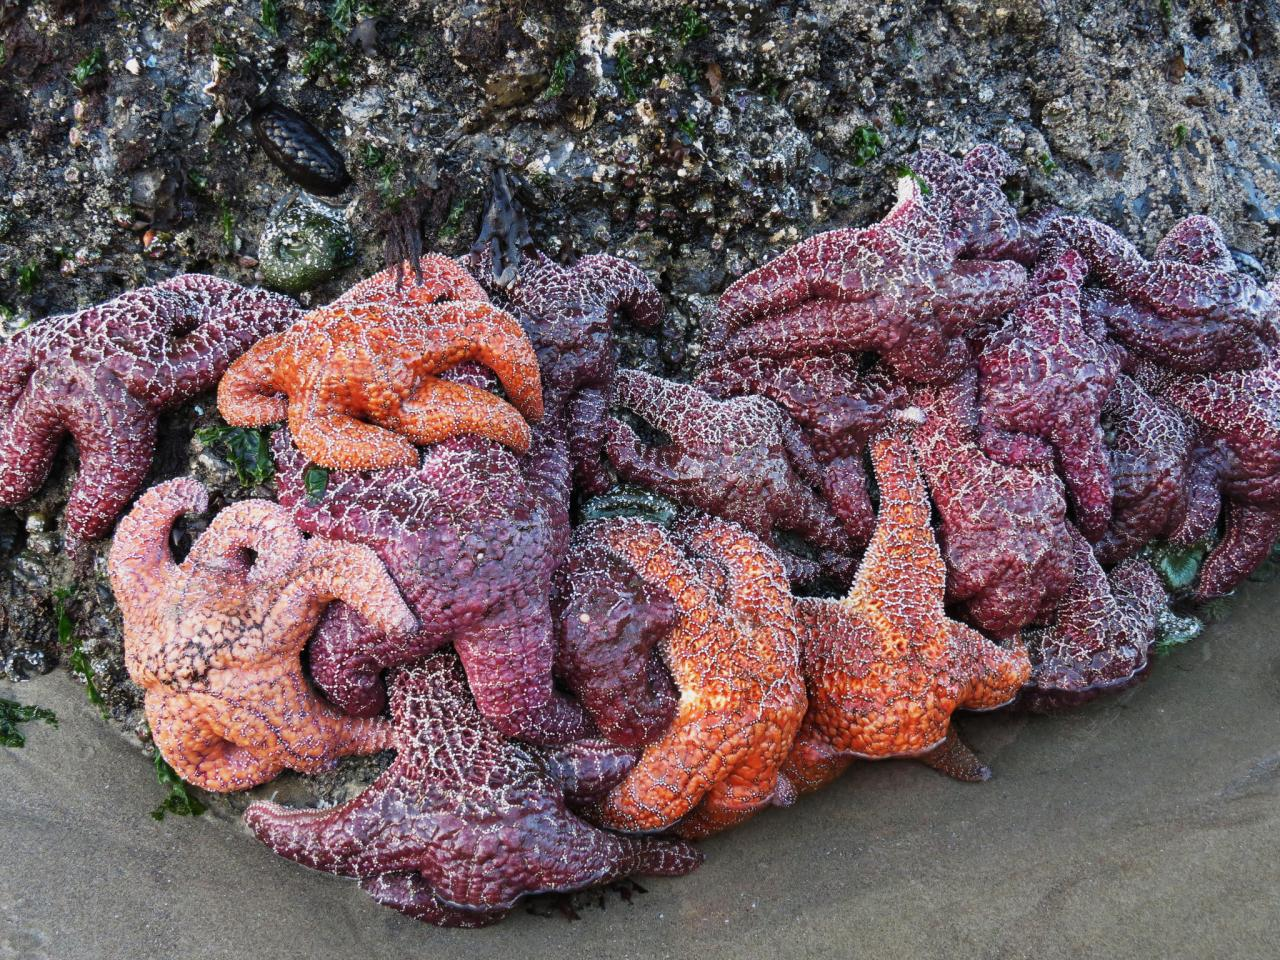 Ochre sea stars.  Photo by Sonja Peterson.